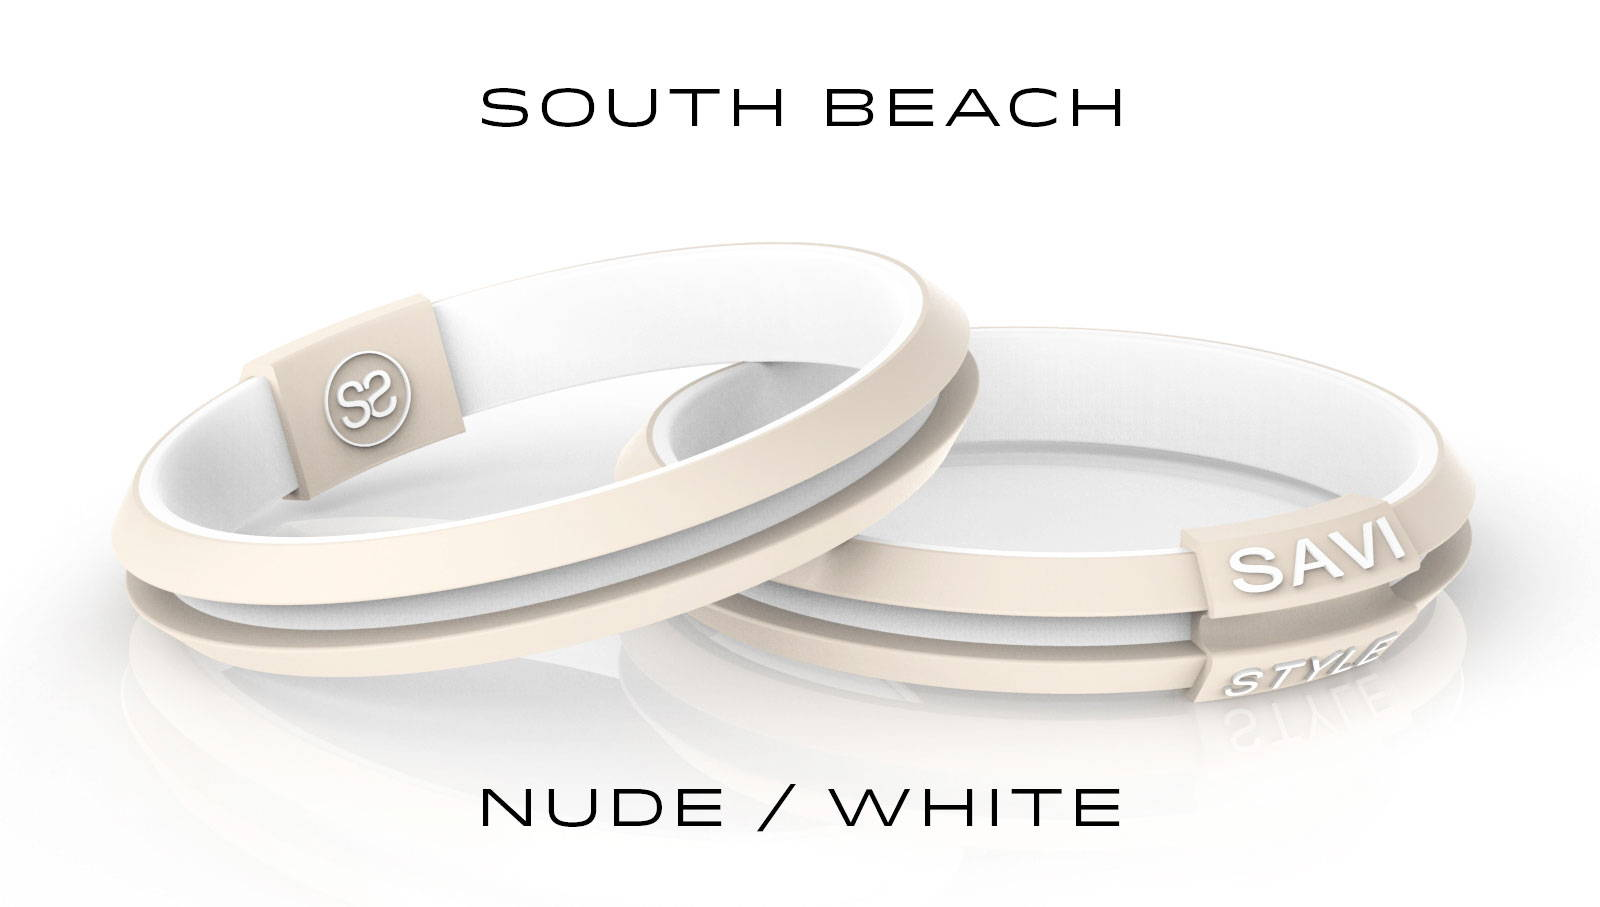 savi sleek south beach by savistyle hair tie bracelet stacked view